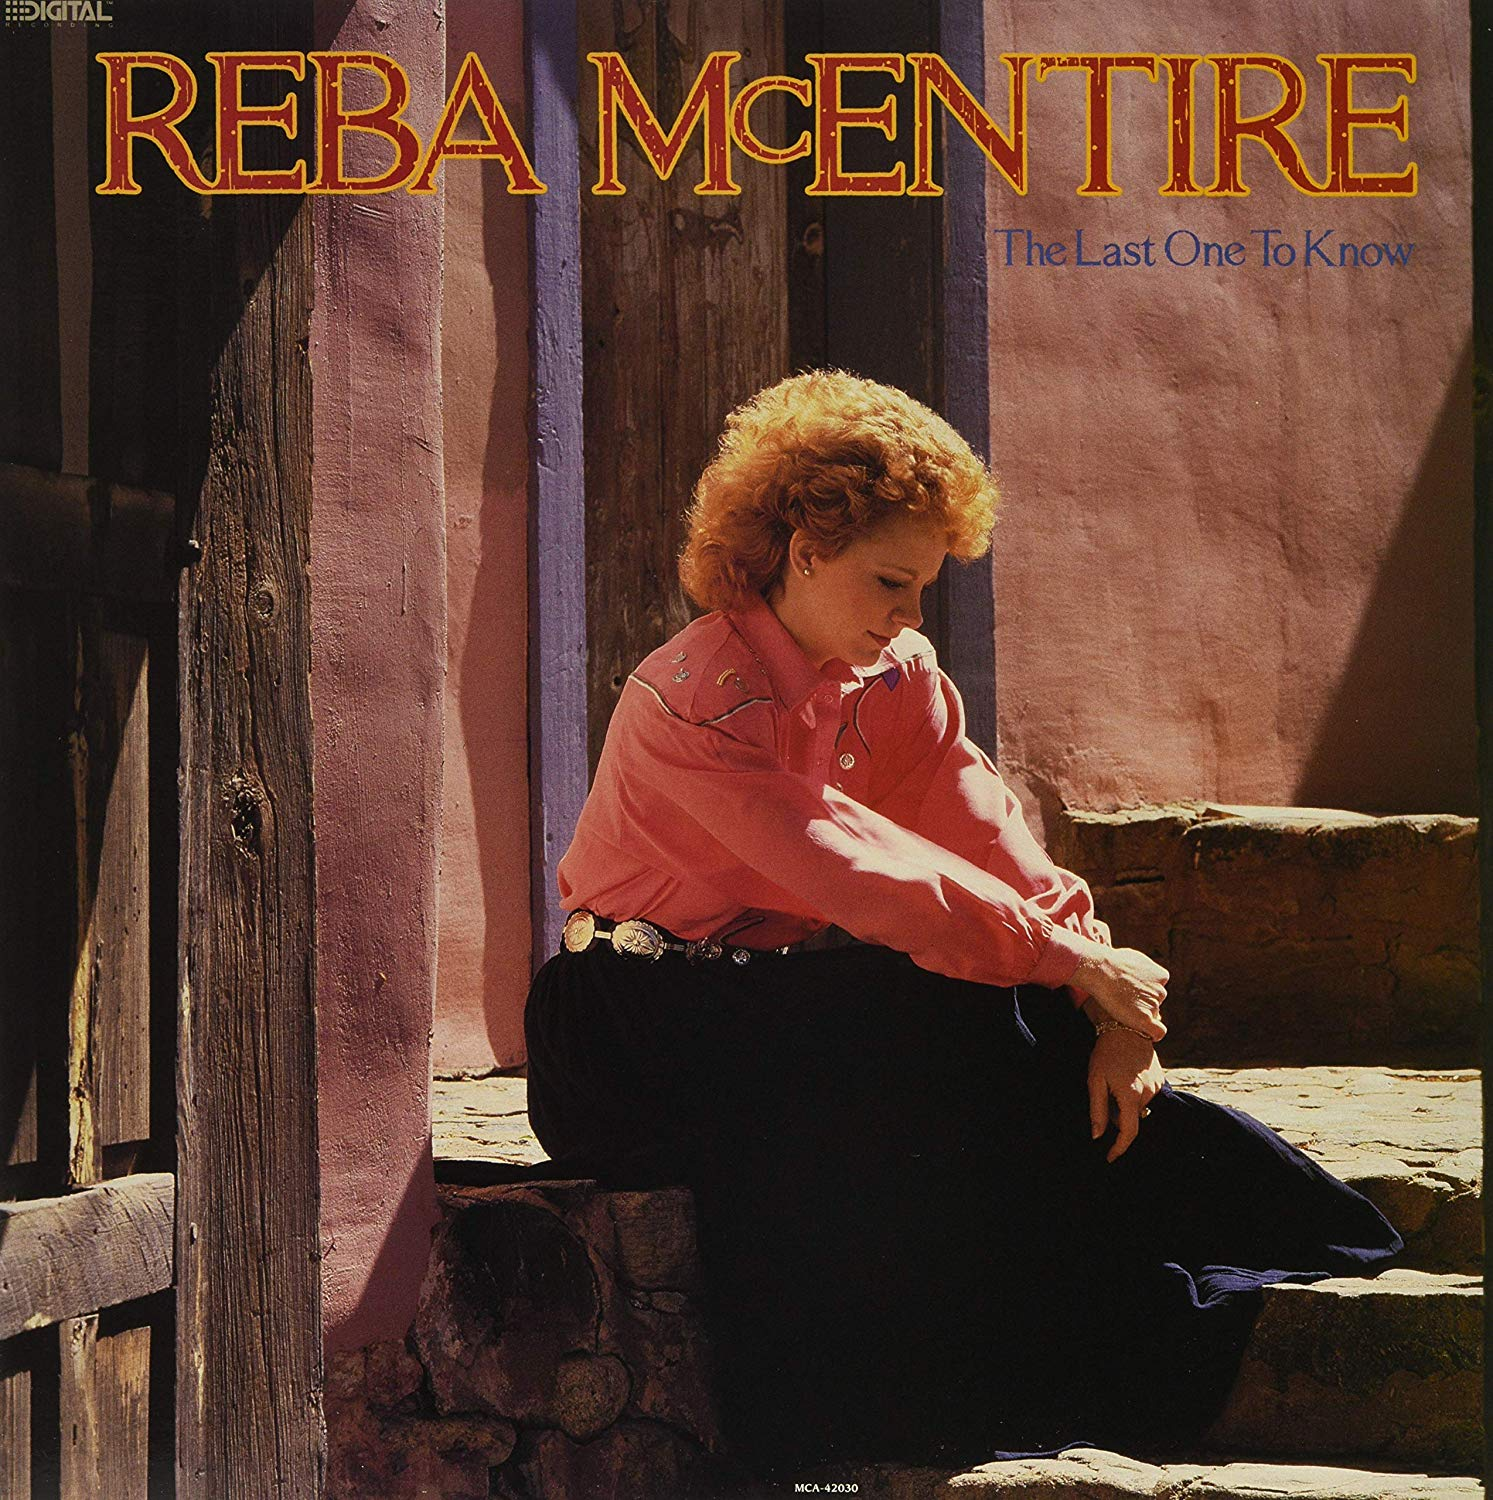 Reba Mcentire - The Last One To Know [LP]